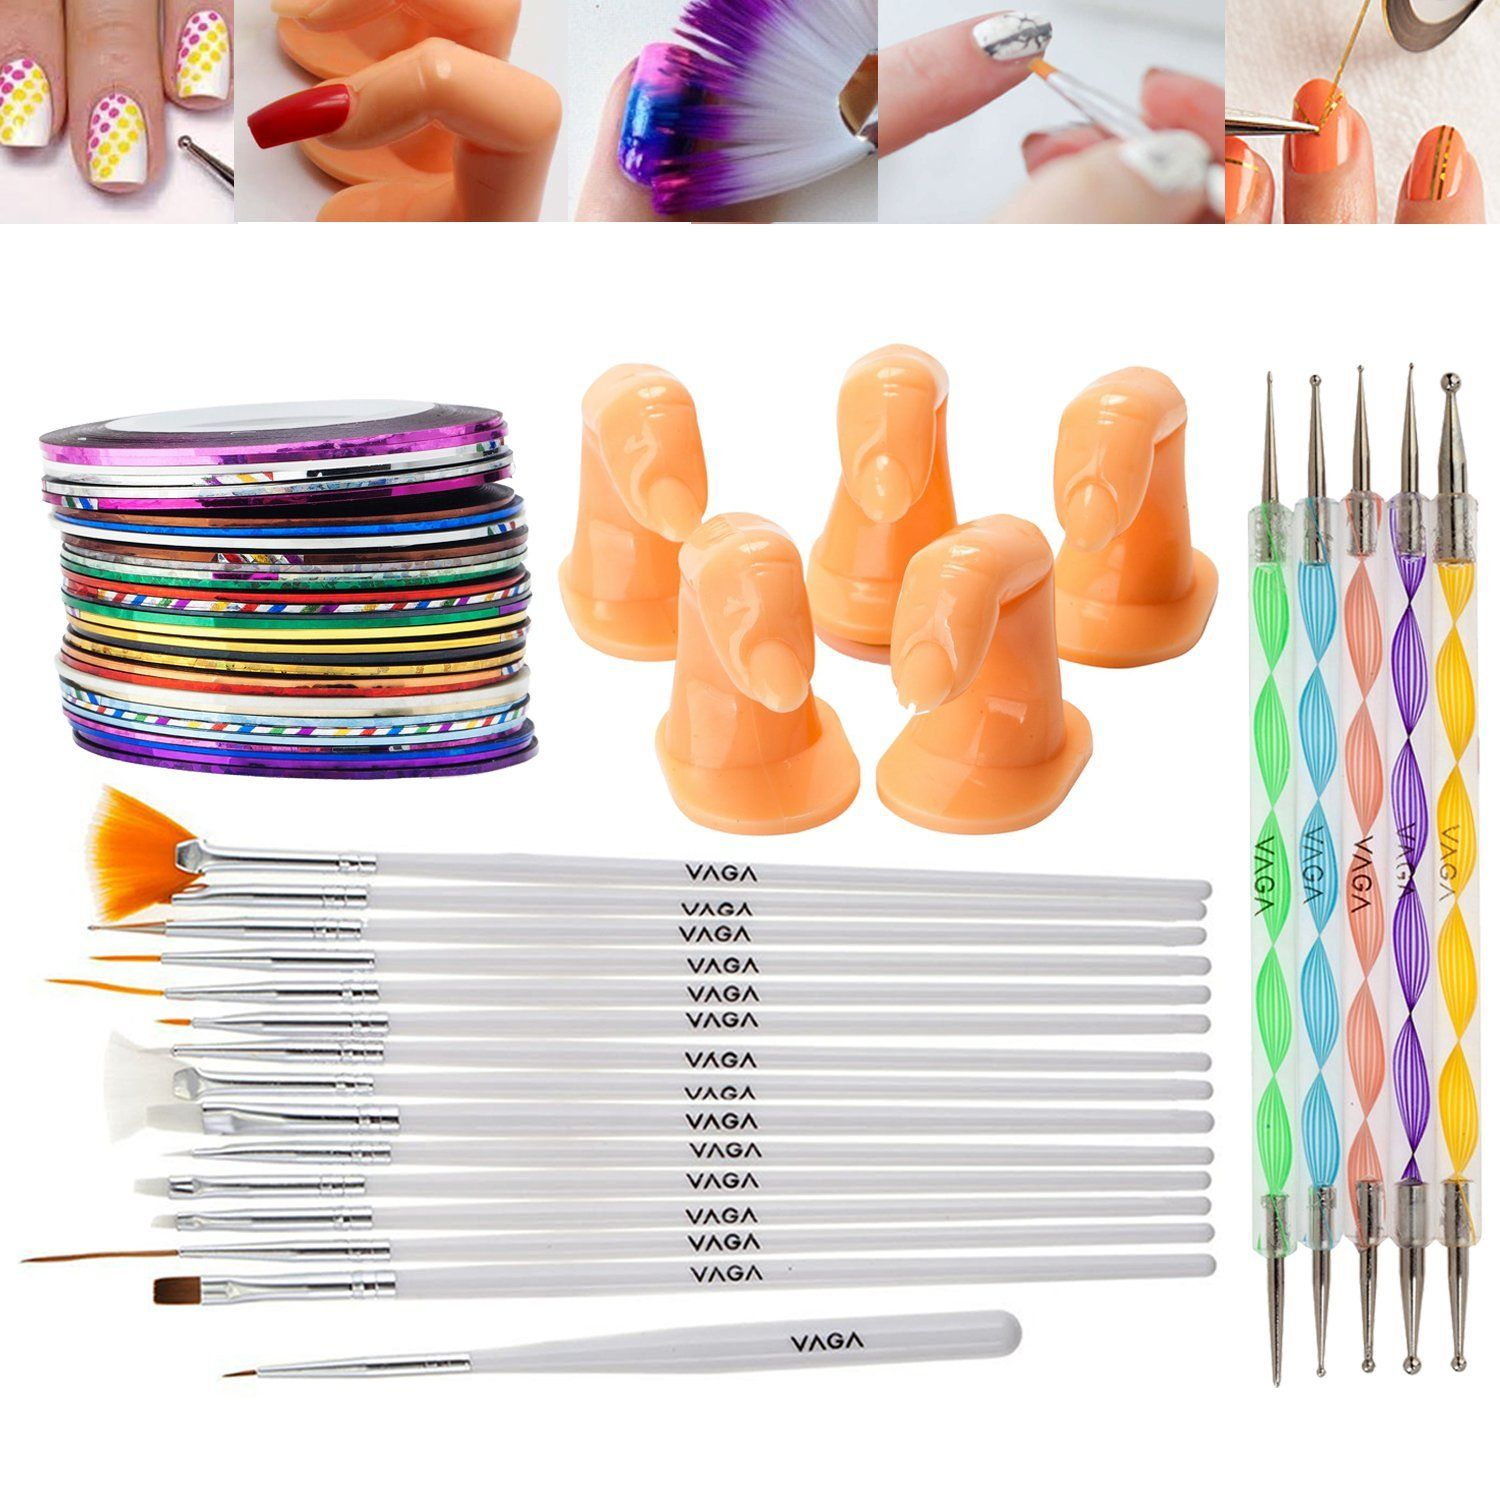 Best Deal Professional Nail Art Accessories Practice Set With 5 High